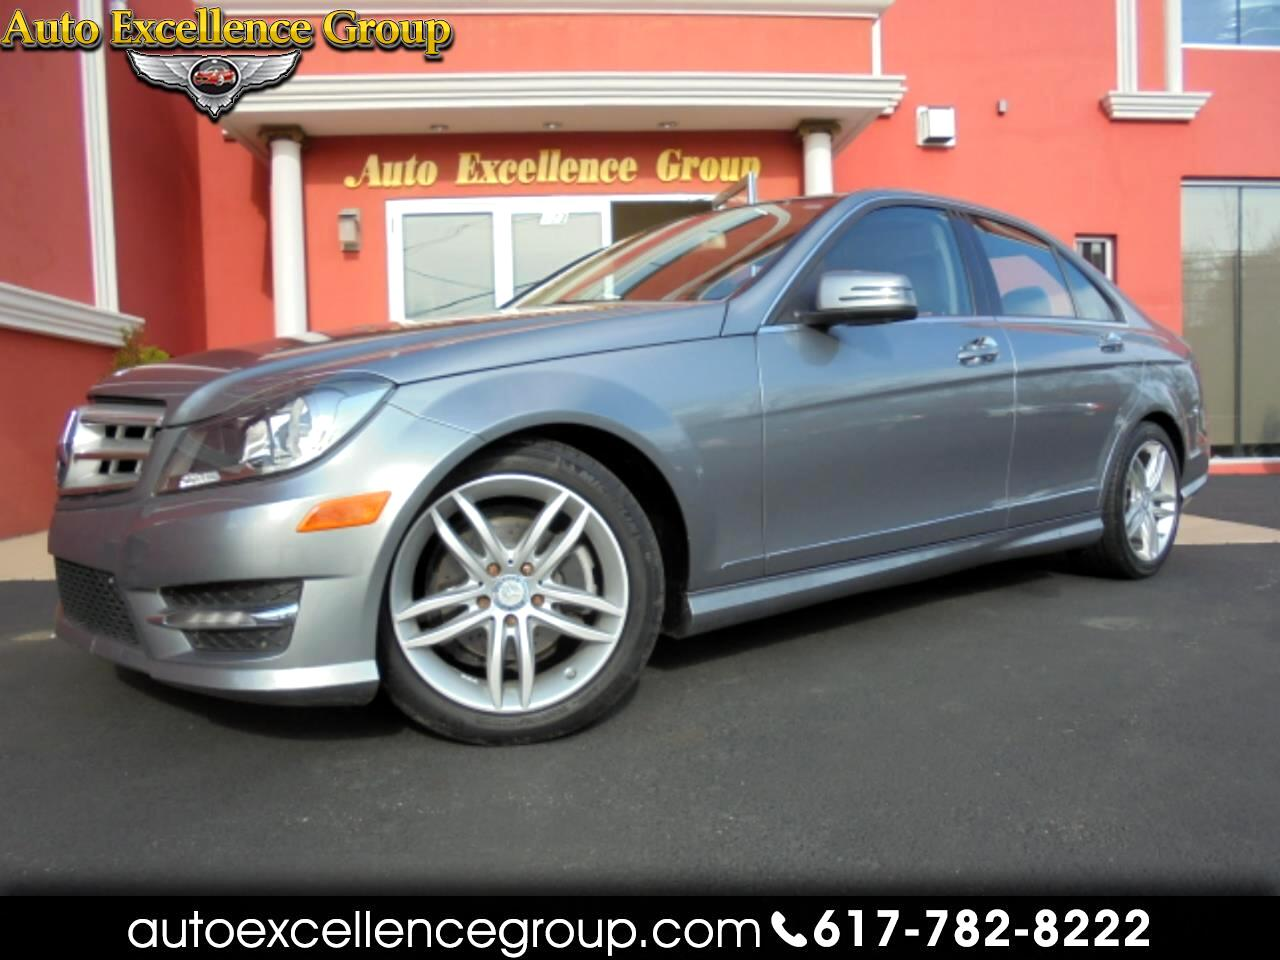 Mercedes-Benz C-Class C300 4MATIC Luxury Sedan 2012